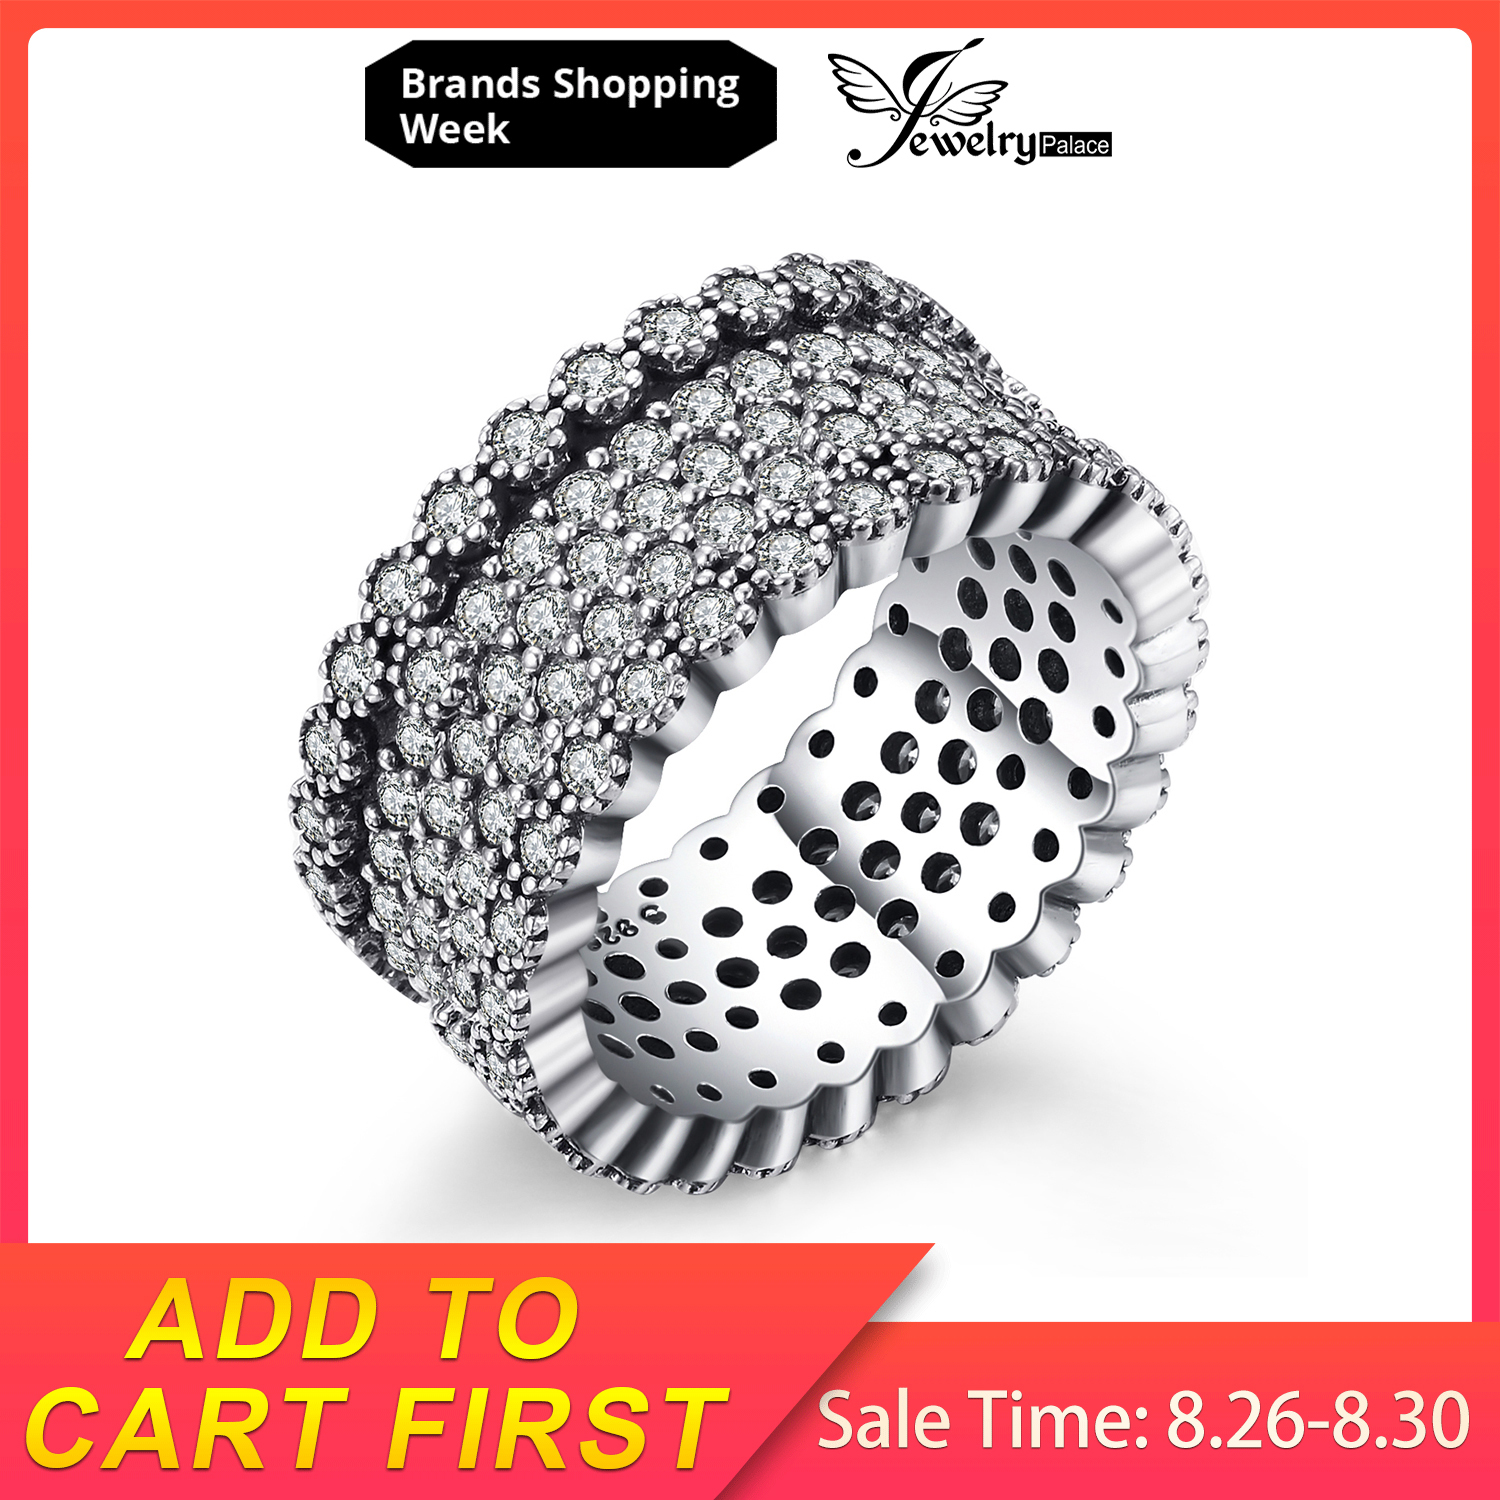 Jewelrypalace Cocktail-Ring Shimmering 925-Sterling-Silver Women For New Hot-Sale As